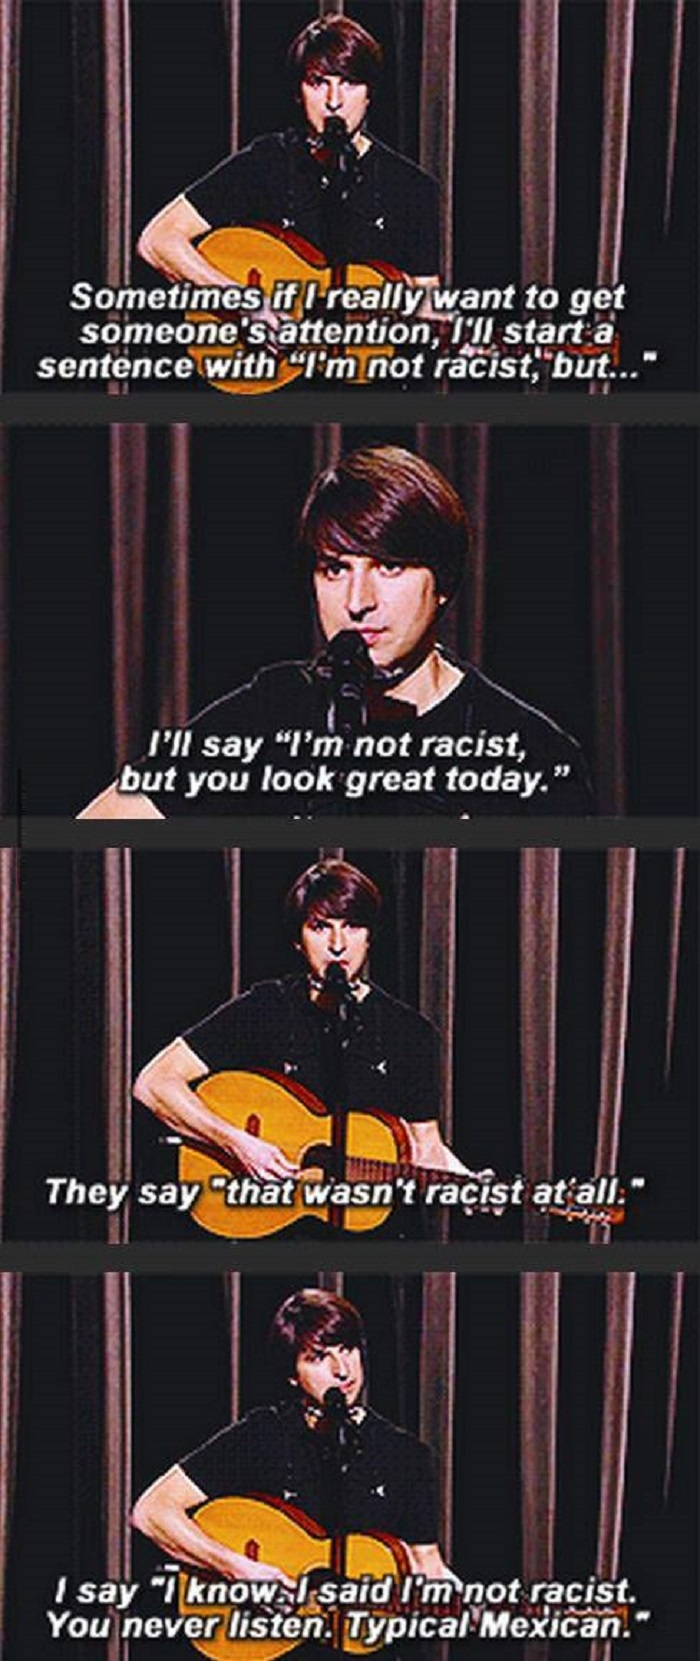 I'm not a racist, but..